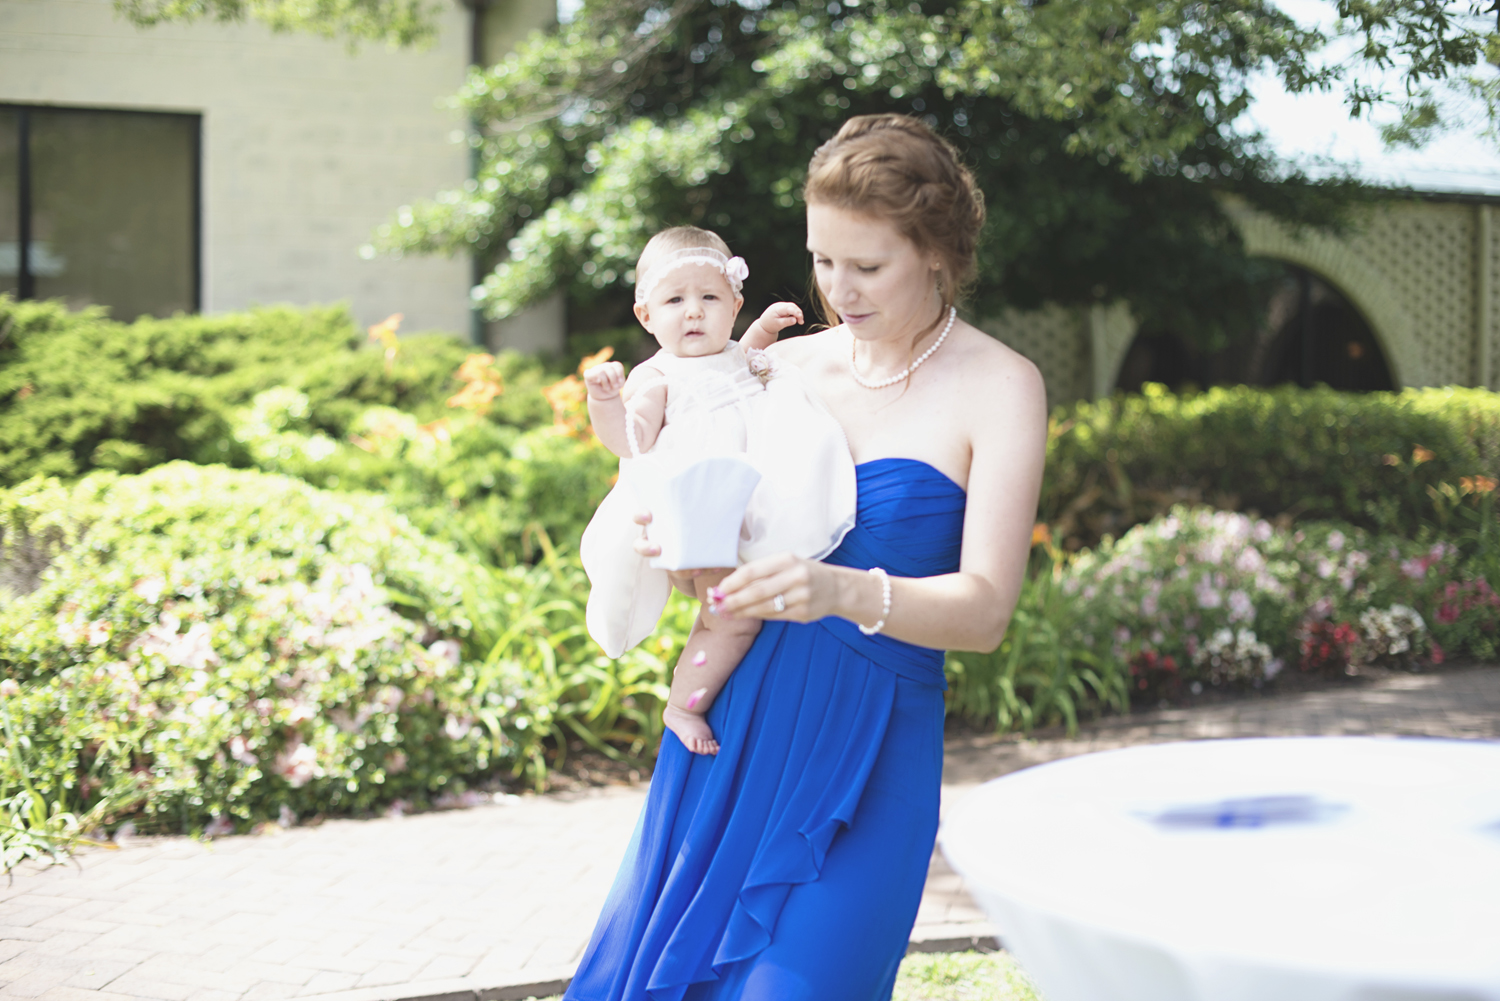 Mariners Museum Wedding | Newport News, Virginia |  Flower girl